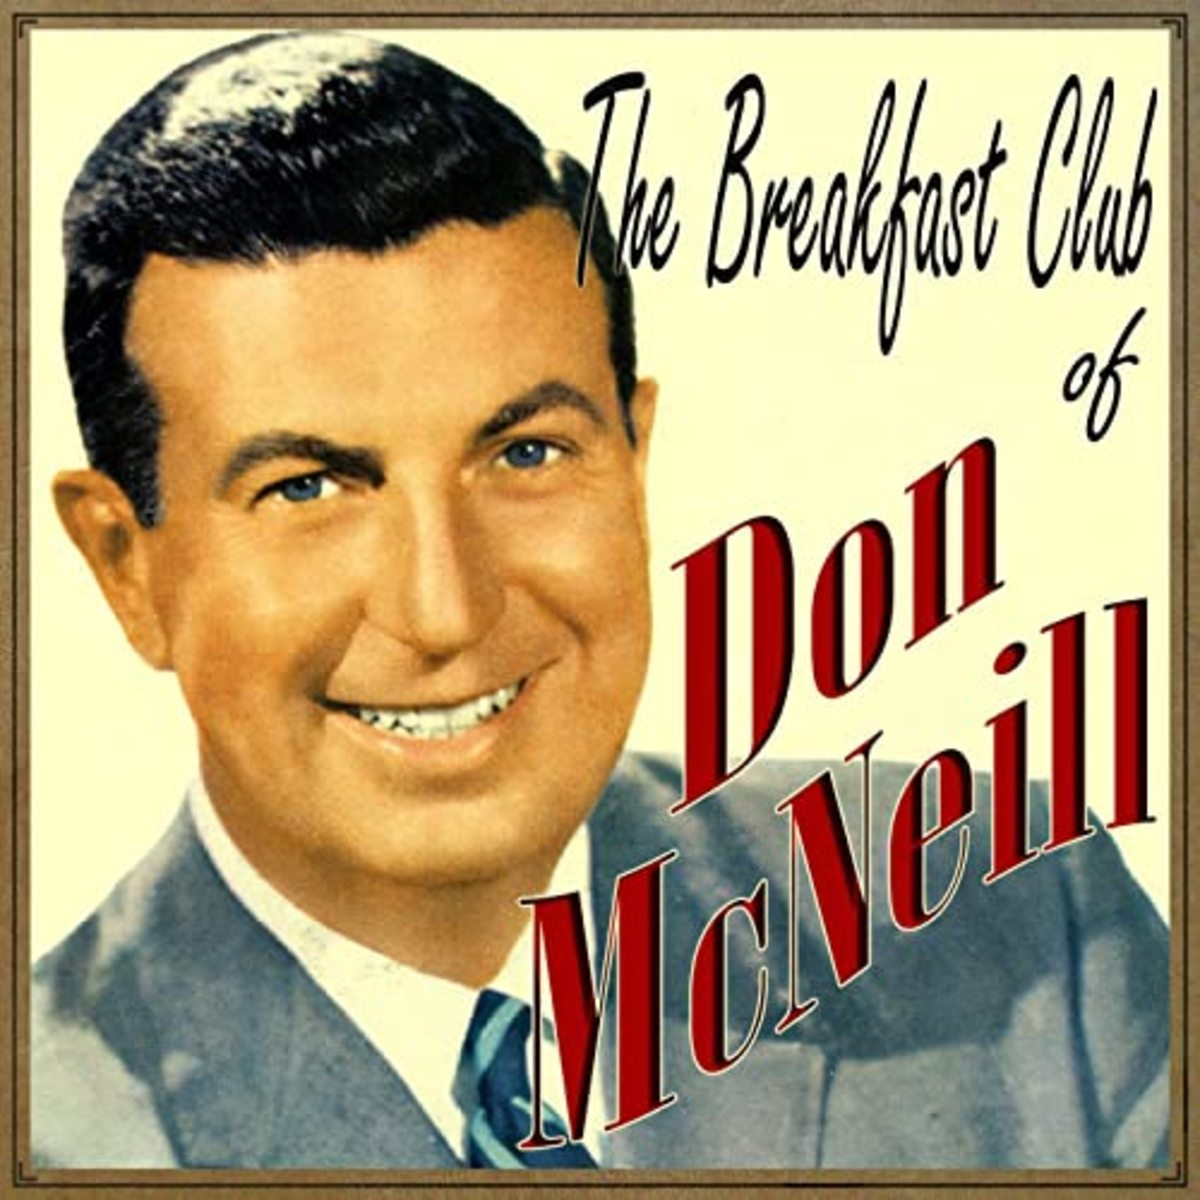 In 1958, Don McNeill's Breakfast Club was one of the most popular radio programs.